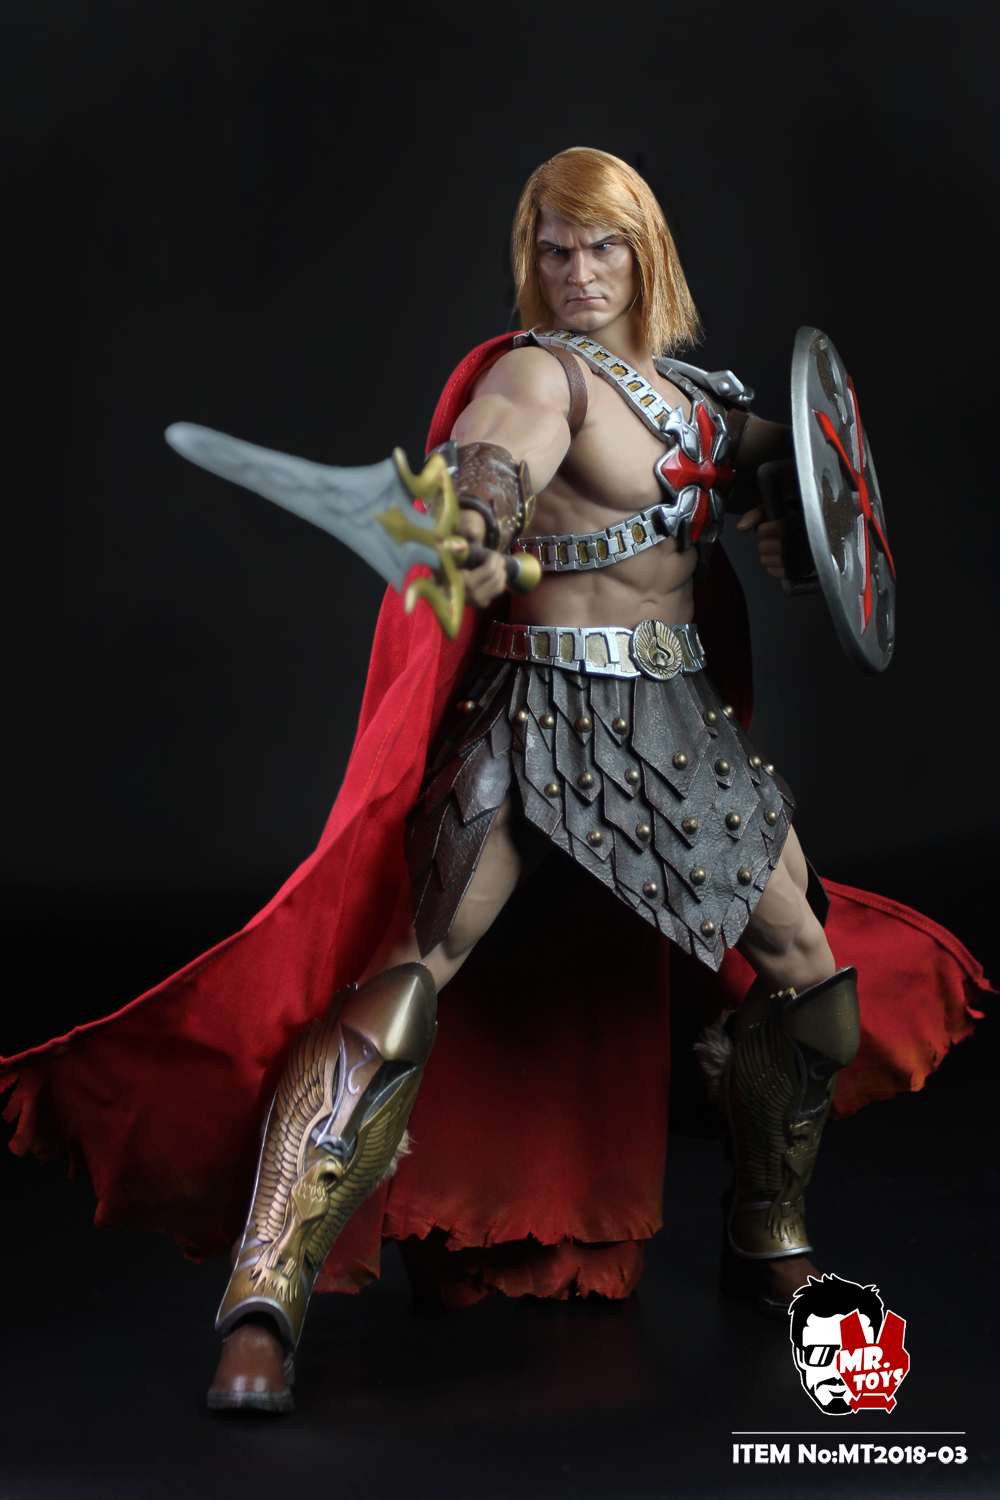 NEW PRODUCT: Mr. Toys MT2018-03 1/6 He-Man head carving costume set O1cn0131